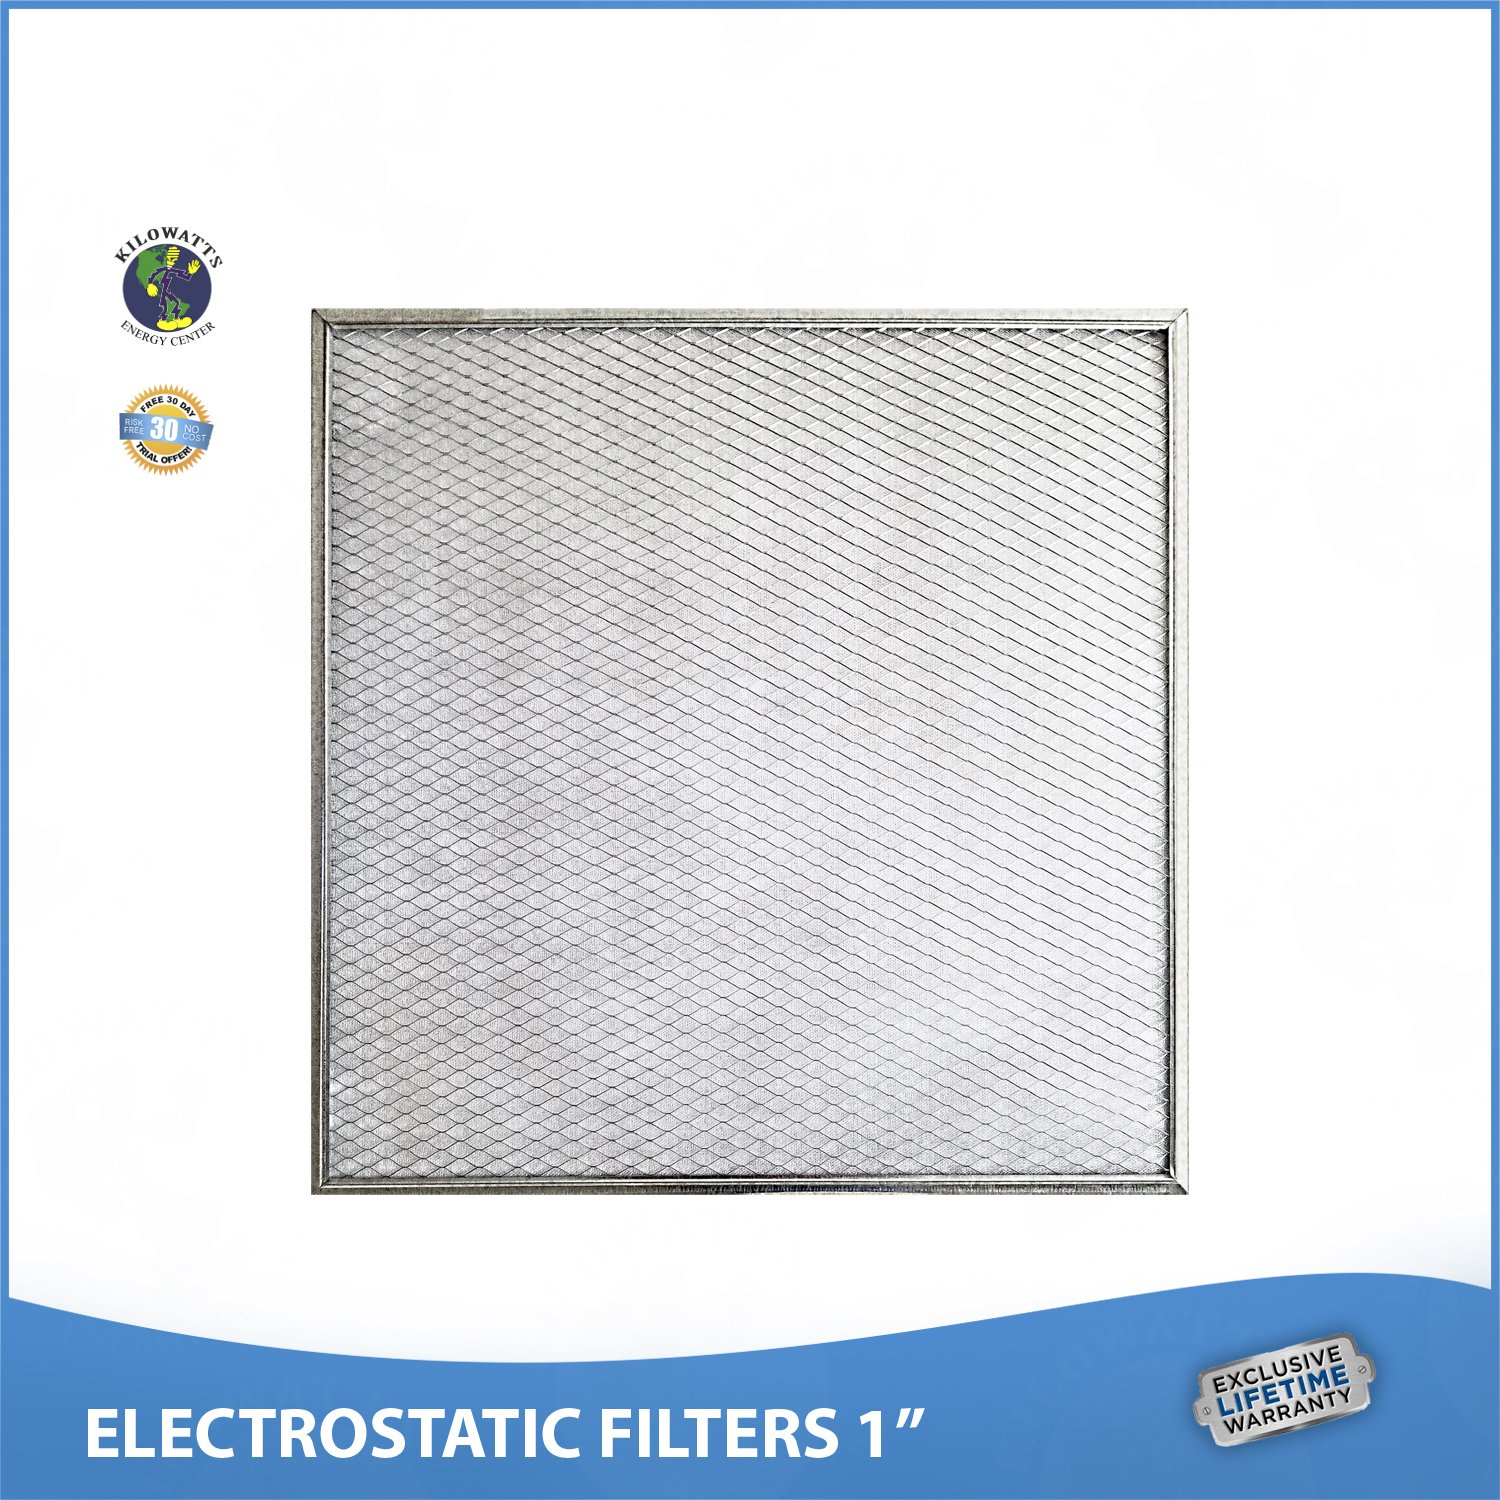 16-3/8 x 21-1/2 x 1 Lifetime Air Filter - Electrostatic Washable Permanent A/C Furnace Air Filter. 65% more efficiency